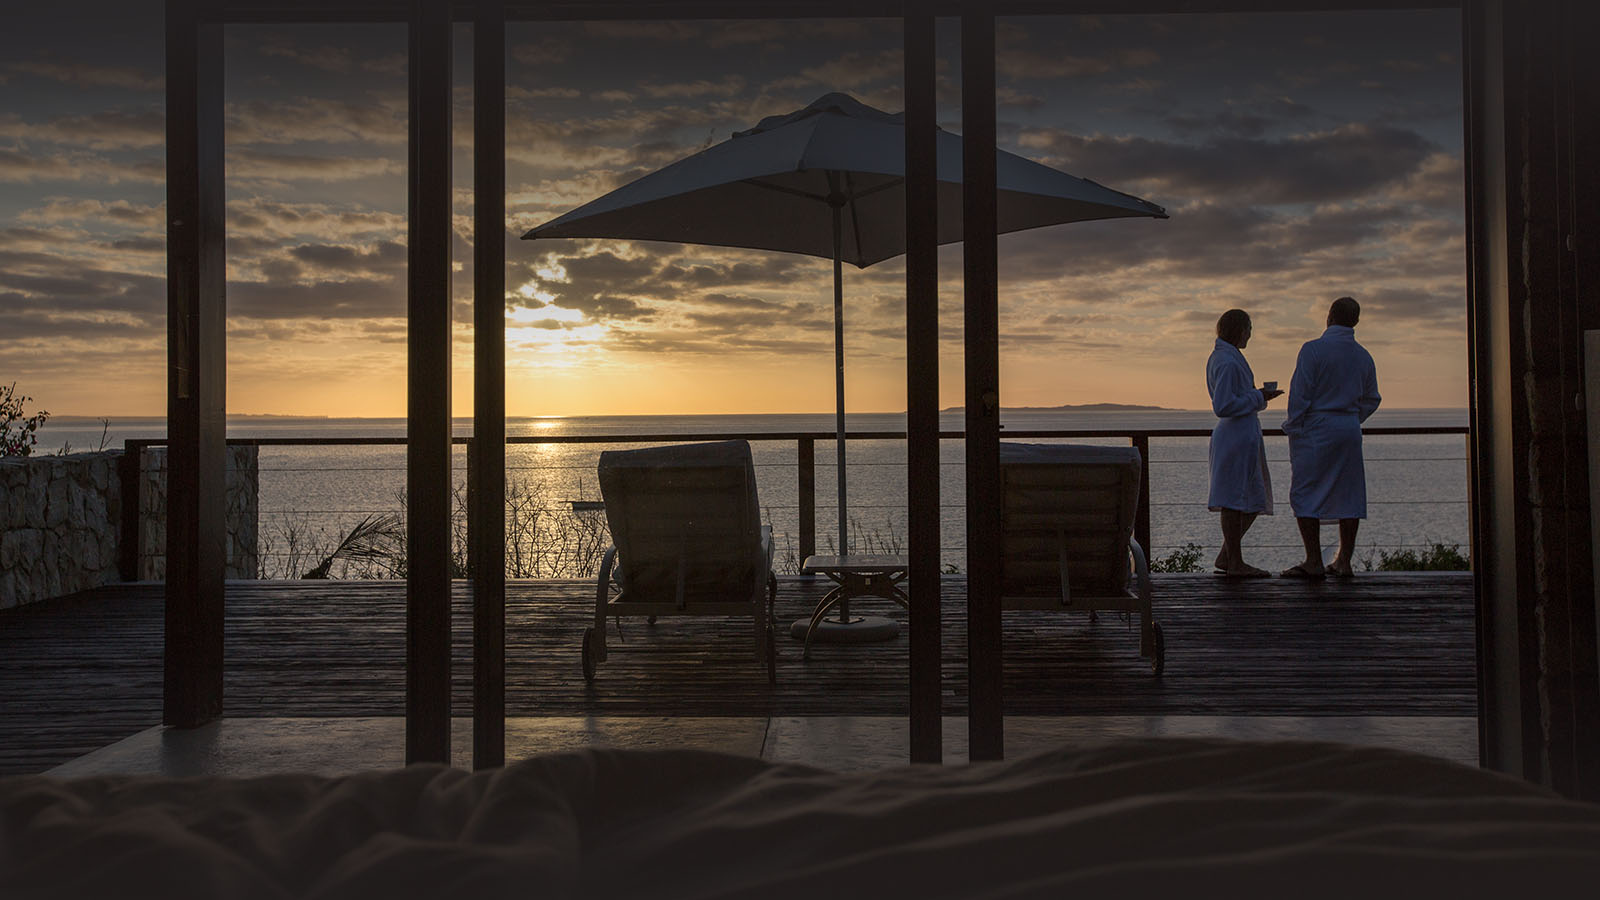 bahia-mar-mozambique-lodges-vilanculos-zambia-in-style-beach-house-luxury-destination-evening-view